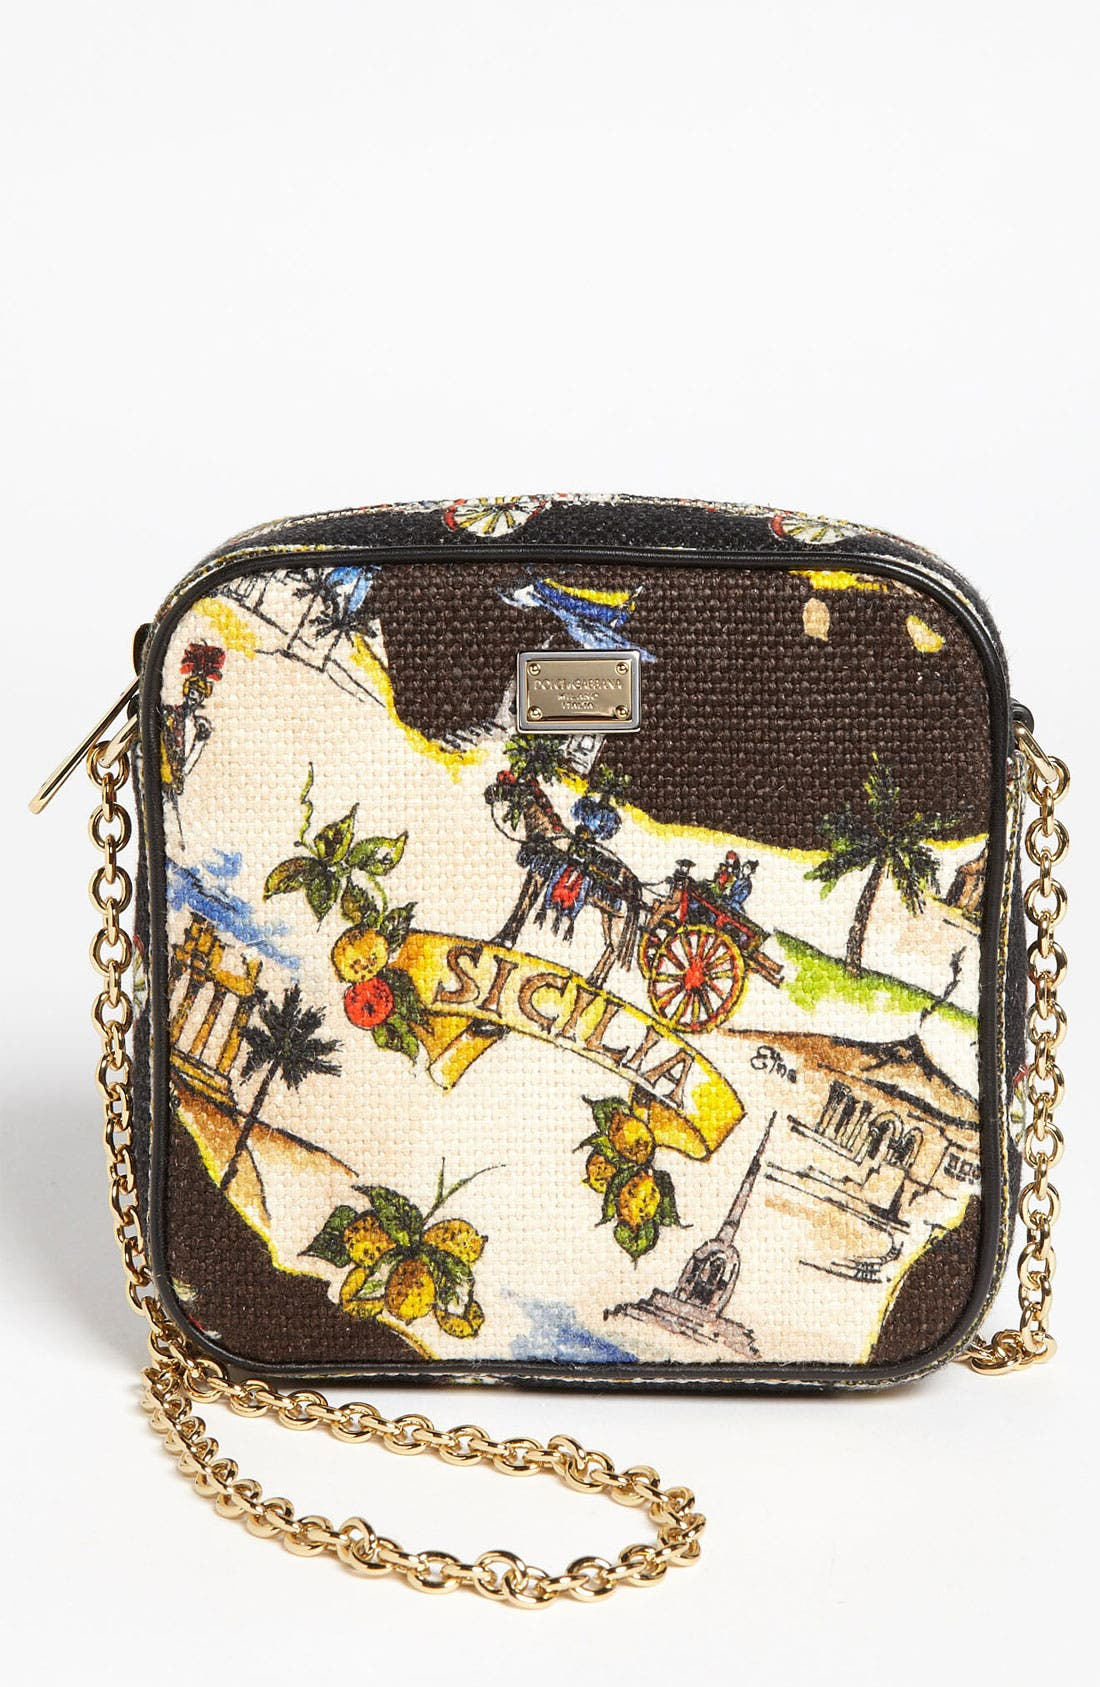 Main Image - Dolce&Gabbana 'Miss Glam - Sicily' Crossbody Bag